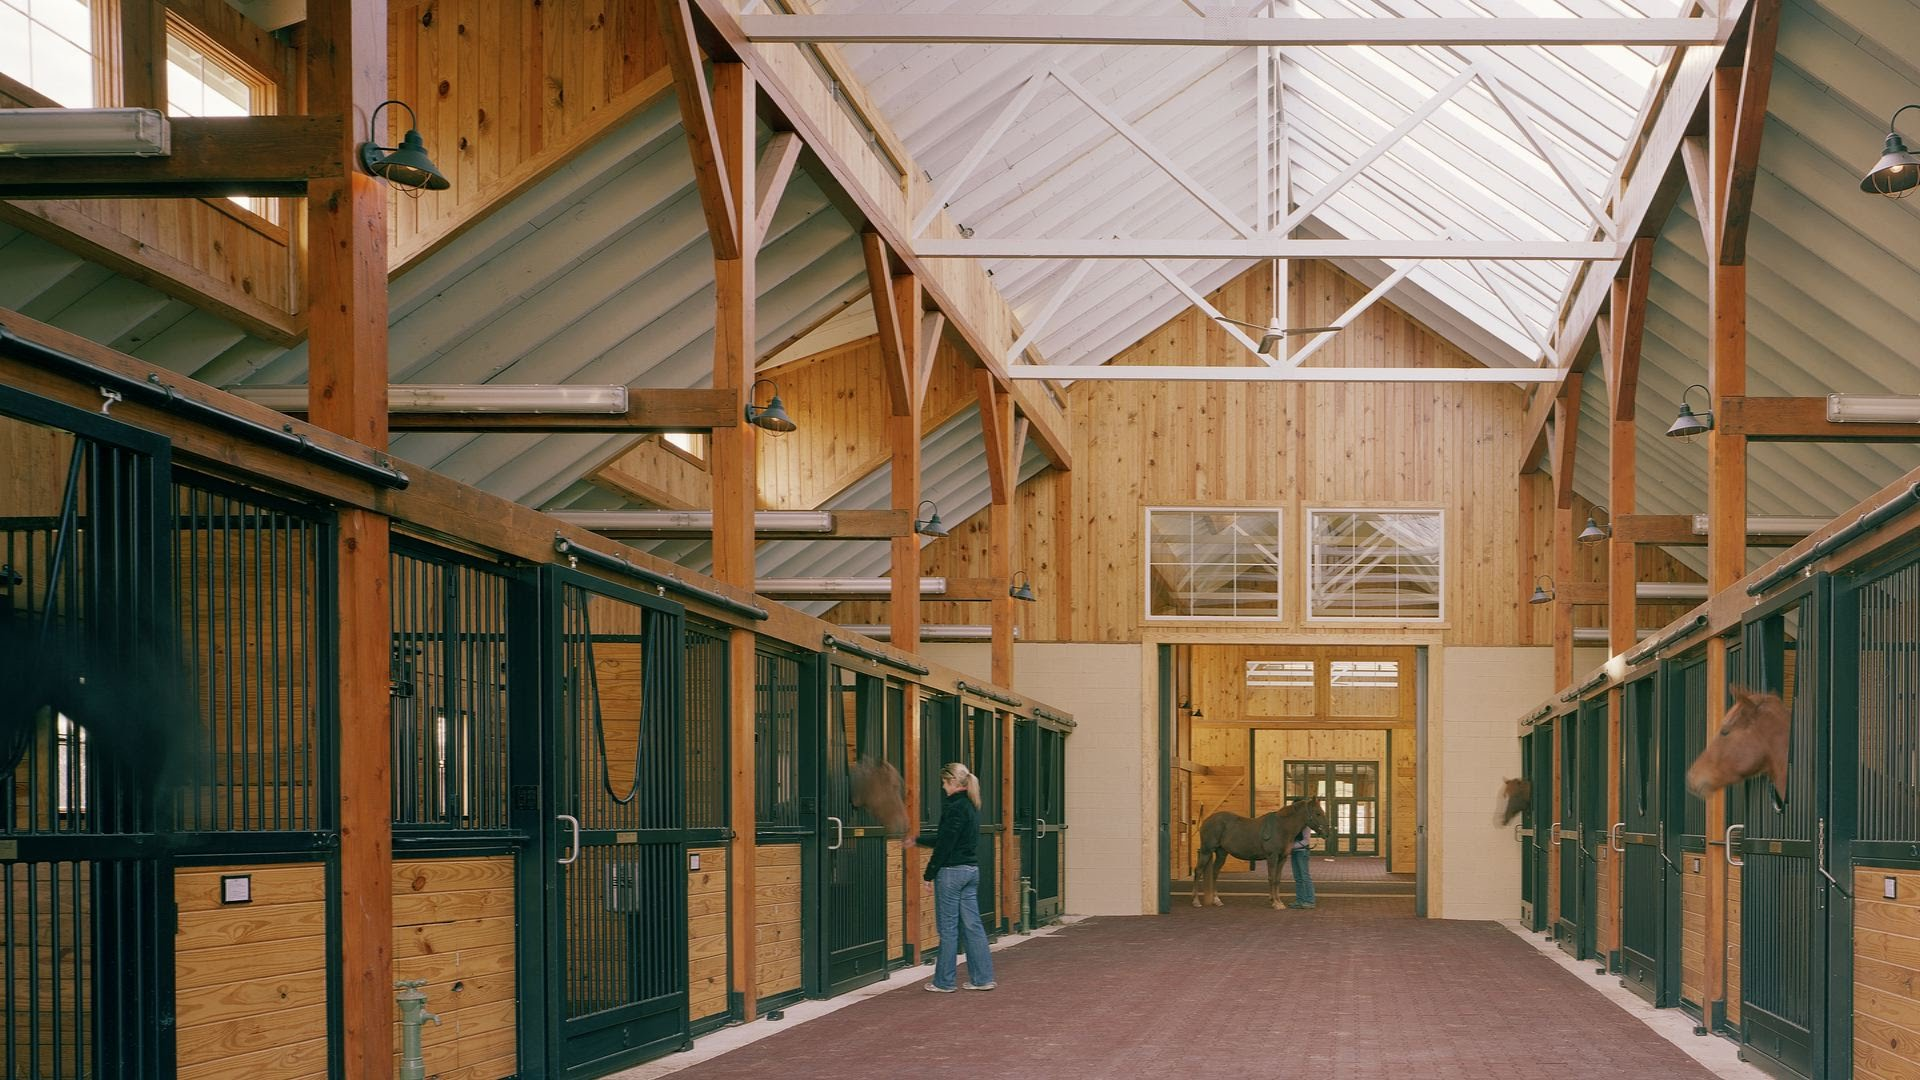 Natural light and ventilation in horse barns - why it matters - YouTube